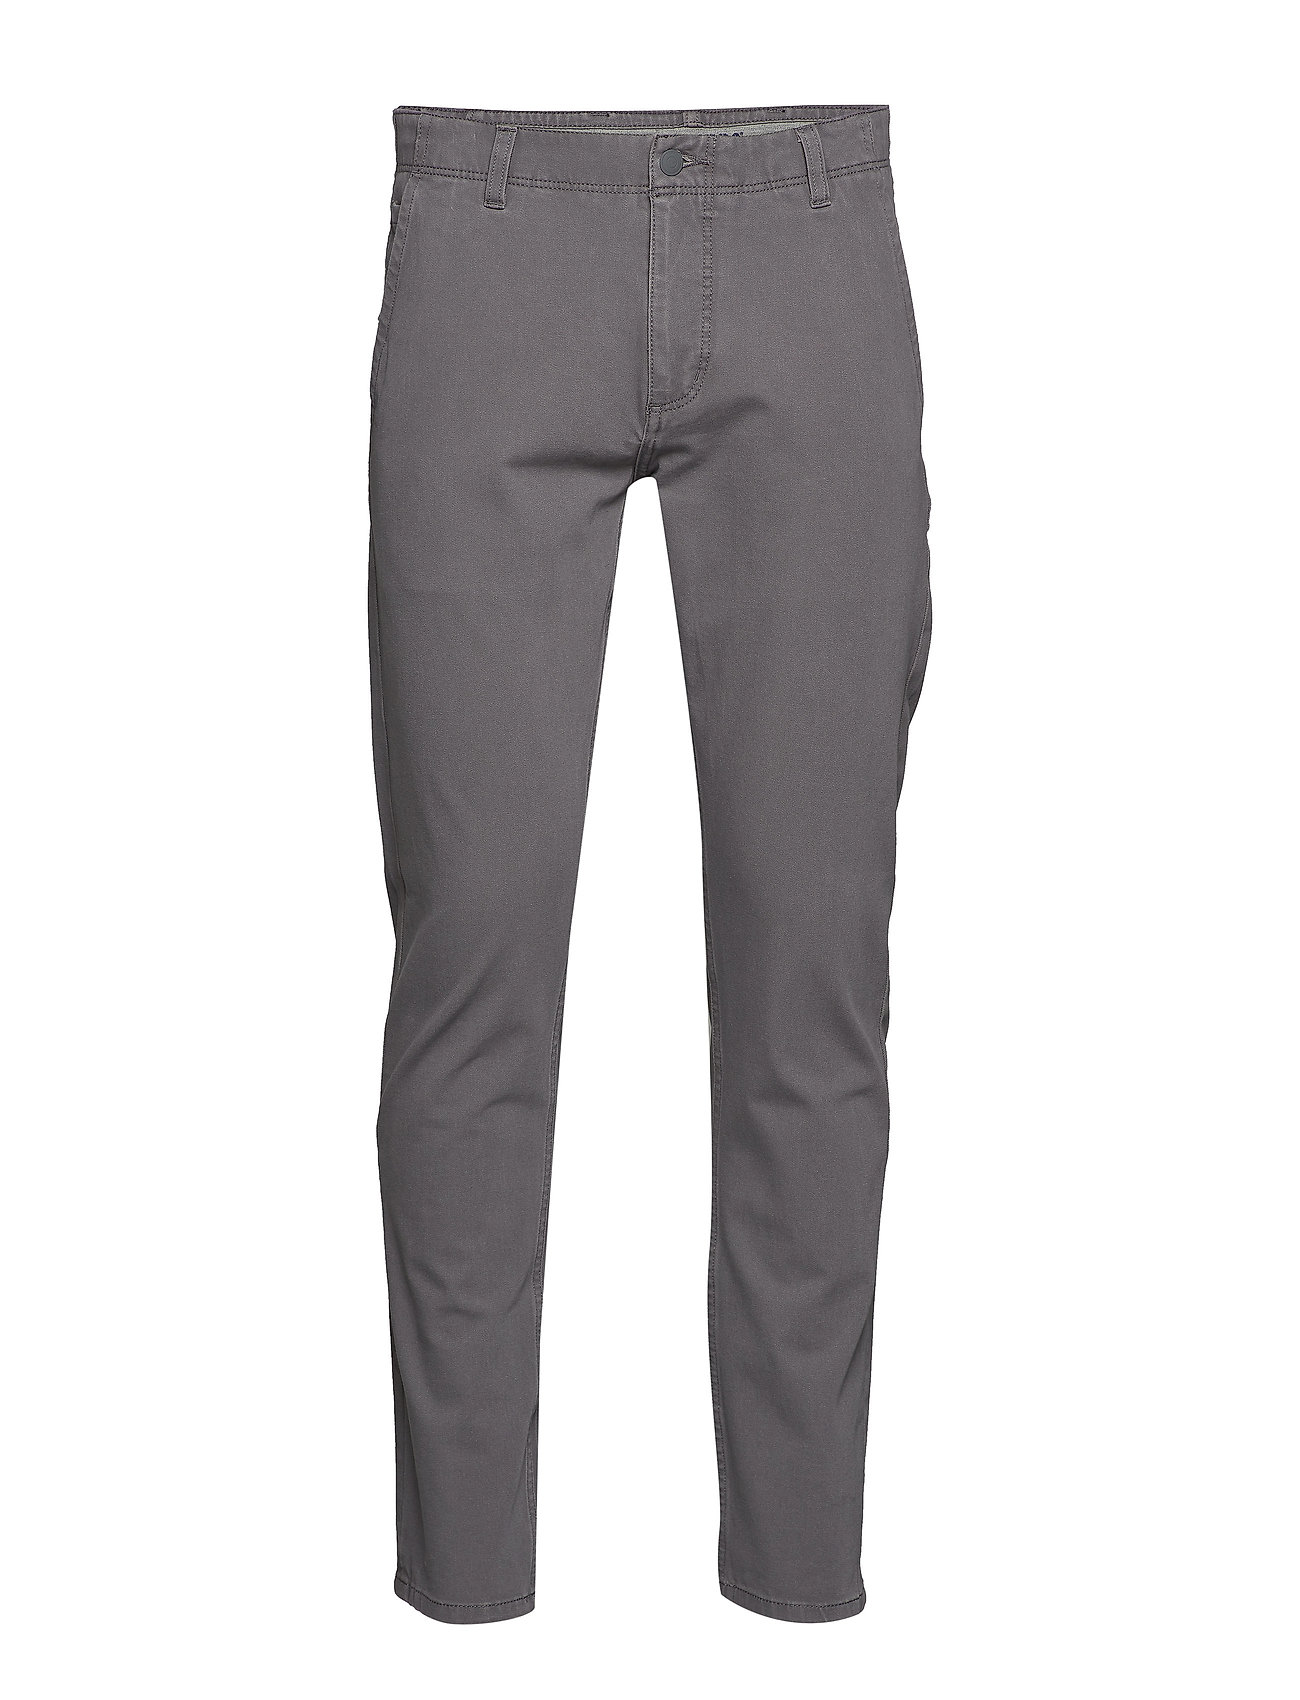 Dockers ALPHA KHAKI 360 BURMA GREY + - GREYS